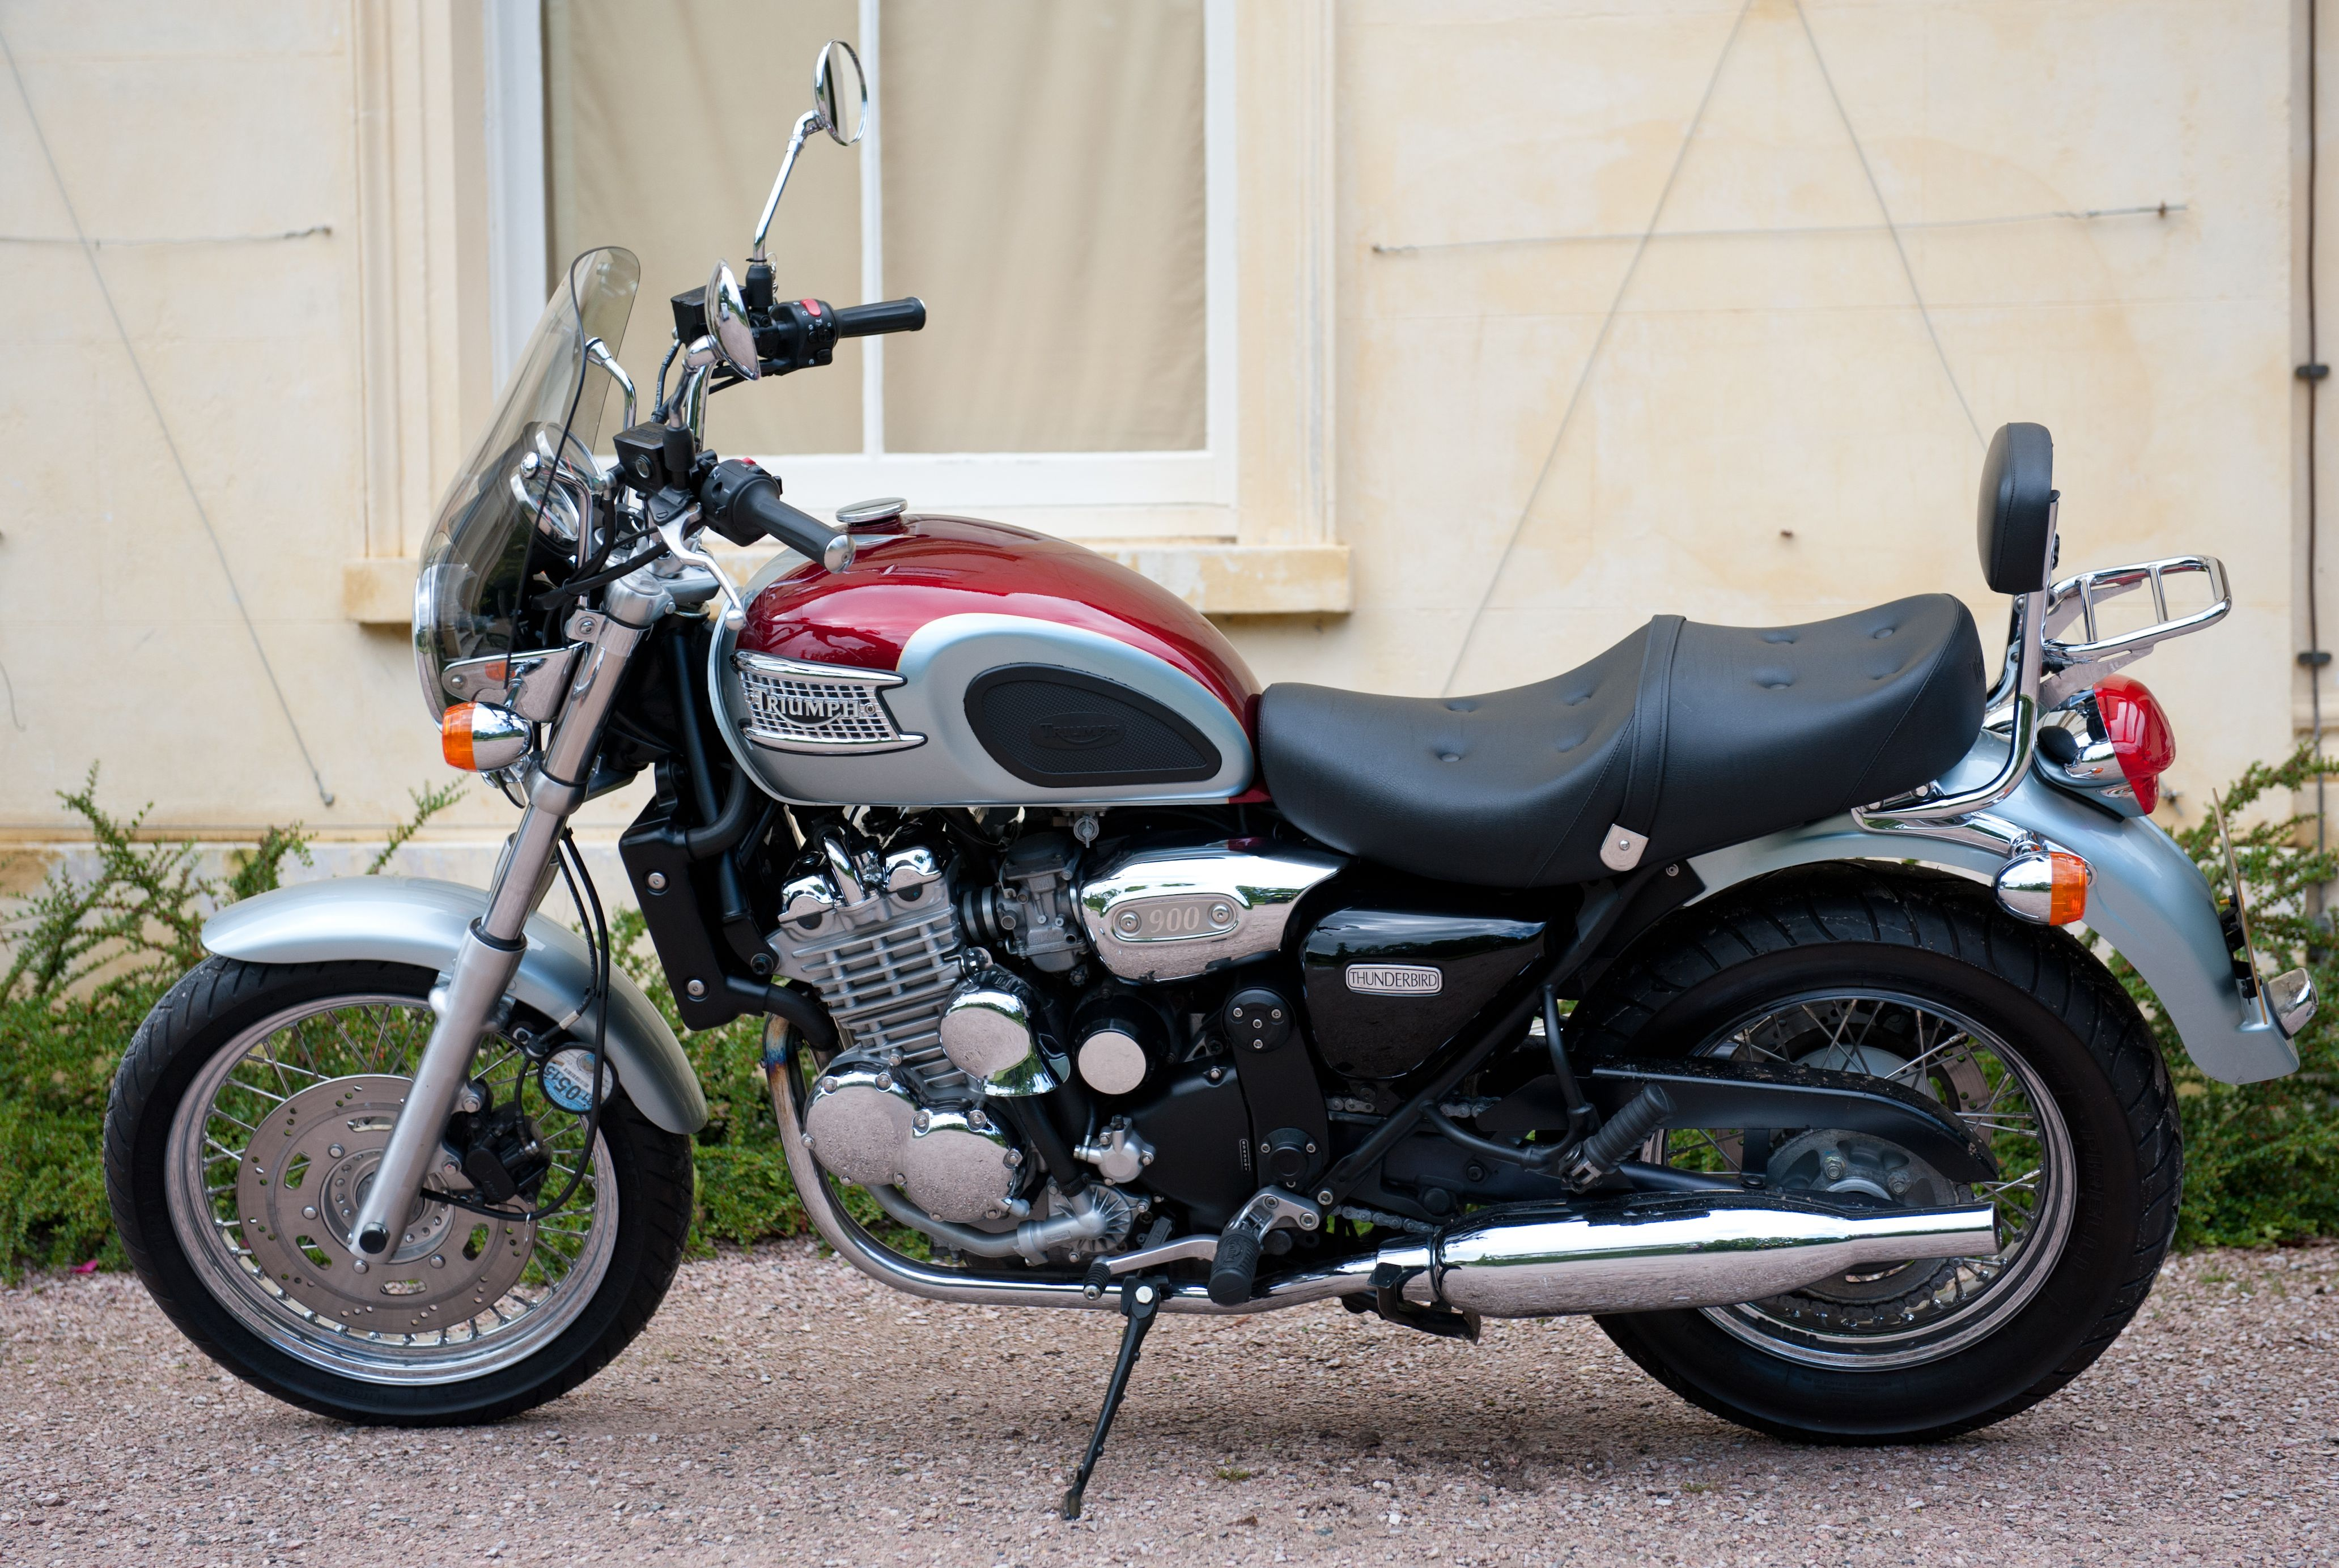 Triumph Thunderbird 900 Triumph Thunderbird 900, Cool Bikes, Cars And  Motorcycles